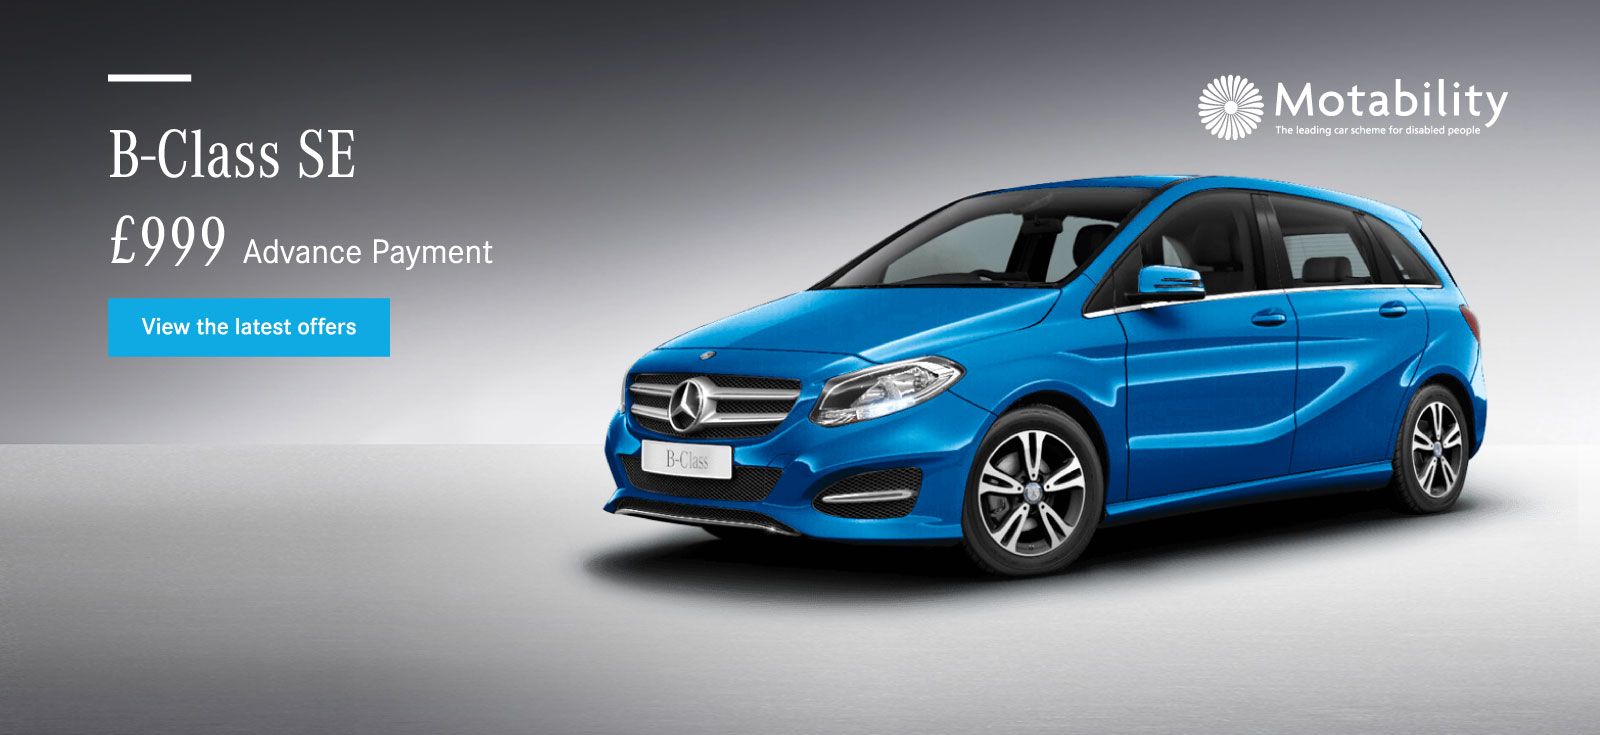 Mercedes benz motability cars motability online for Mercedes benz vehicle search